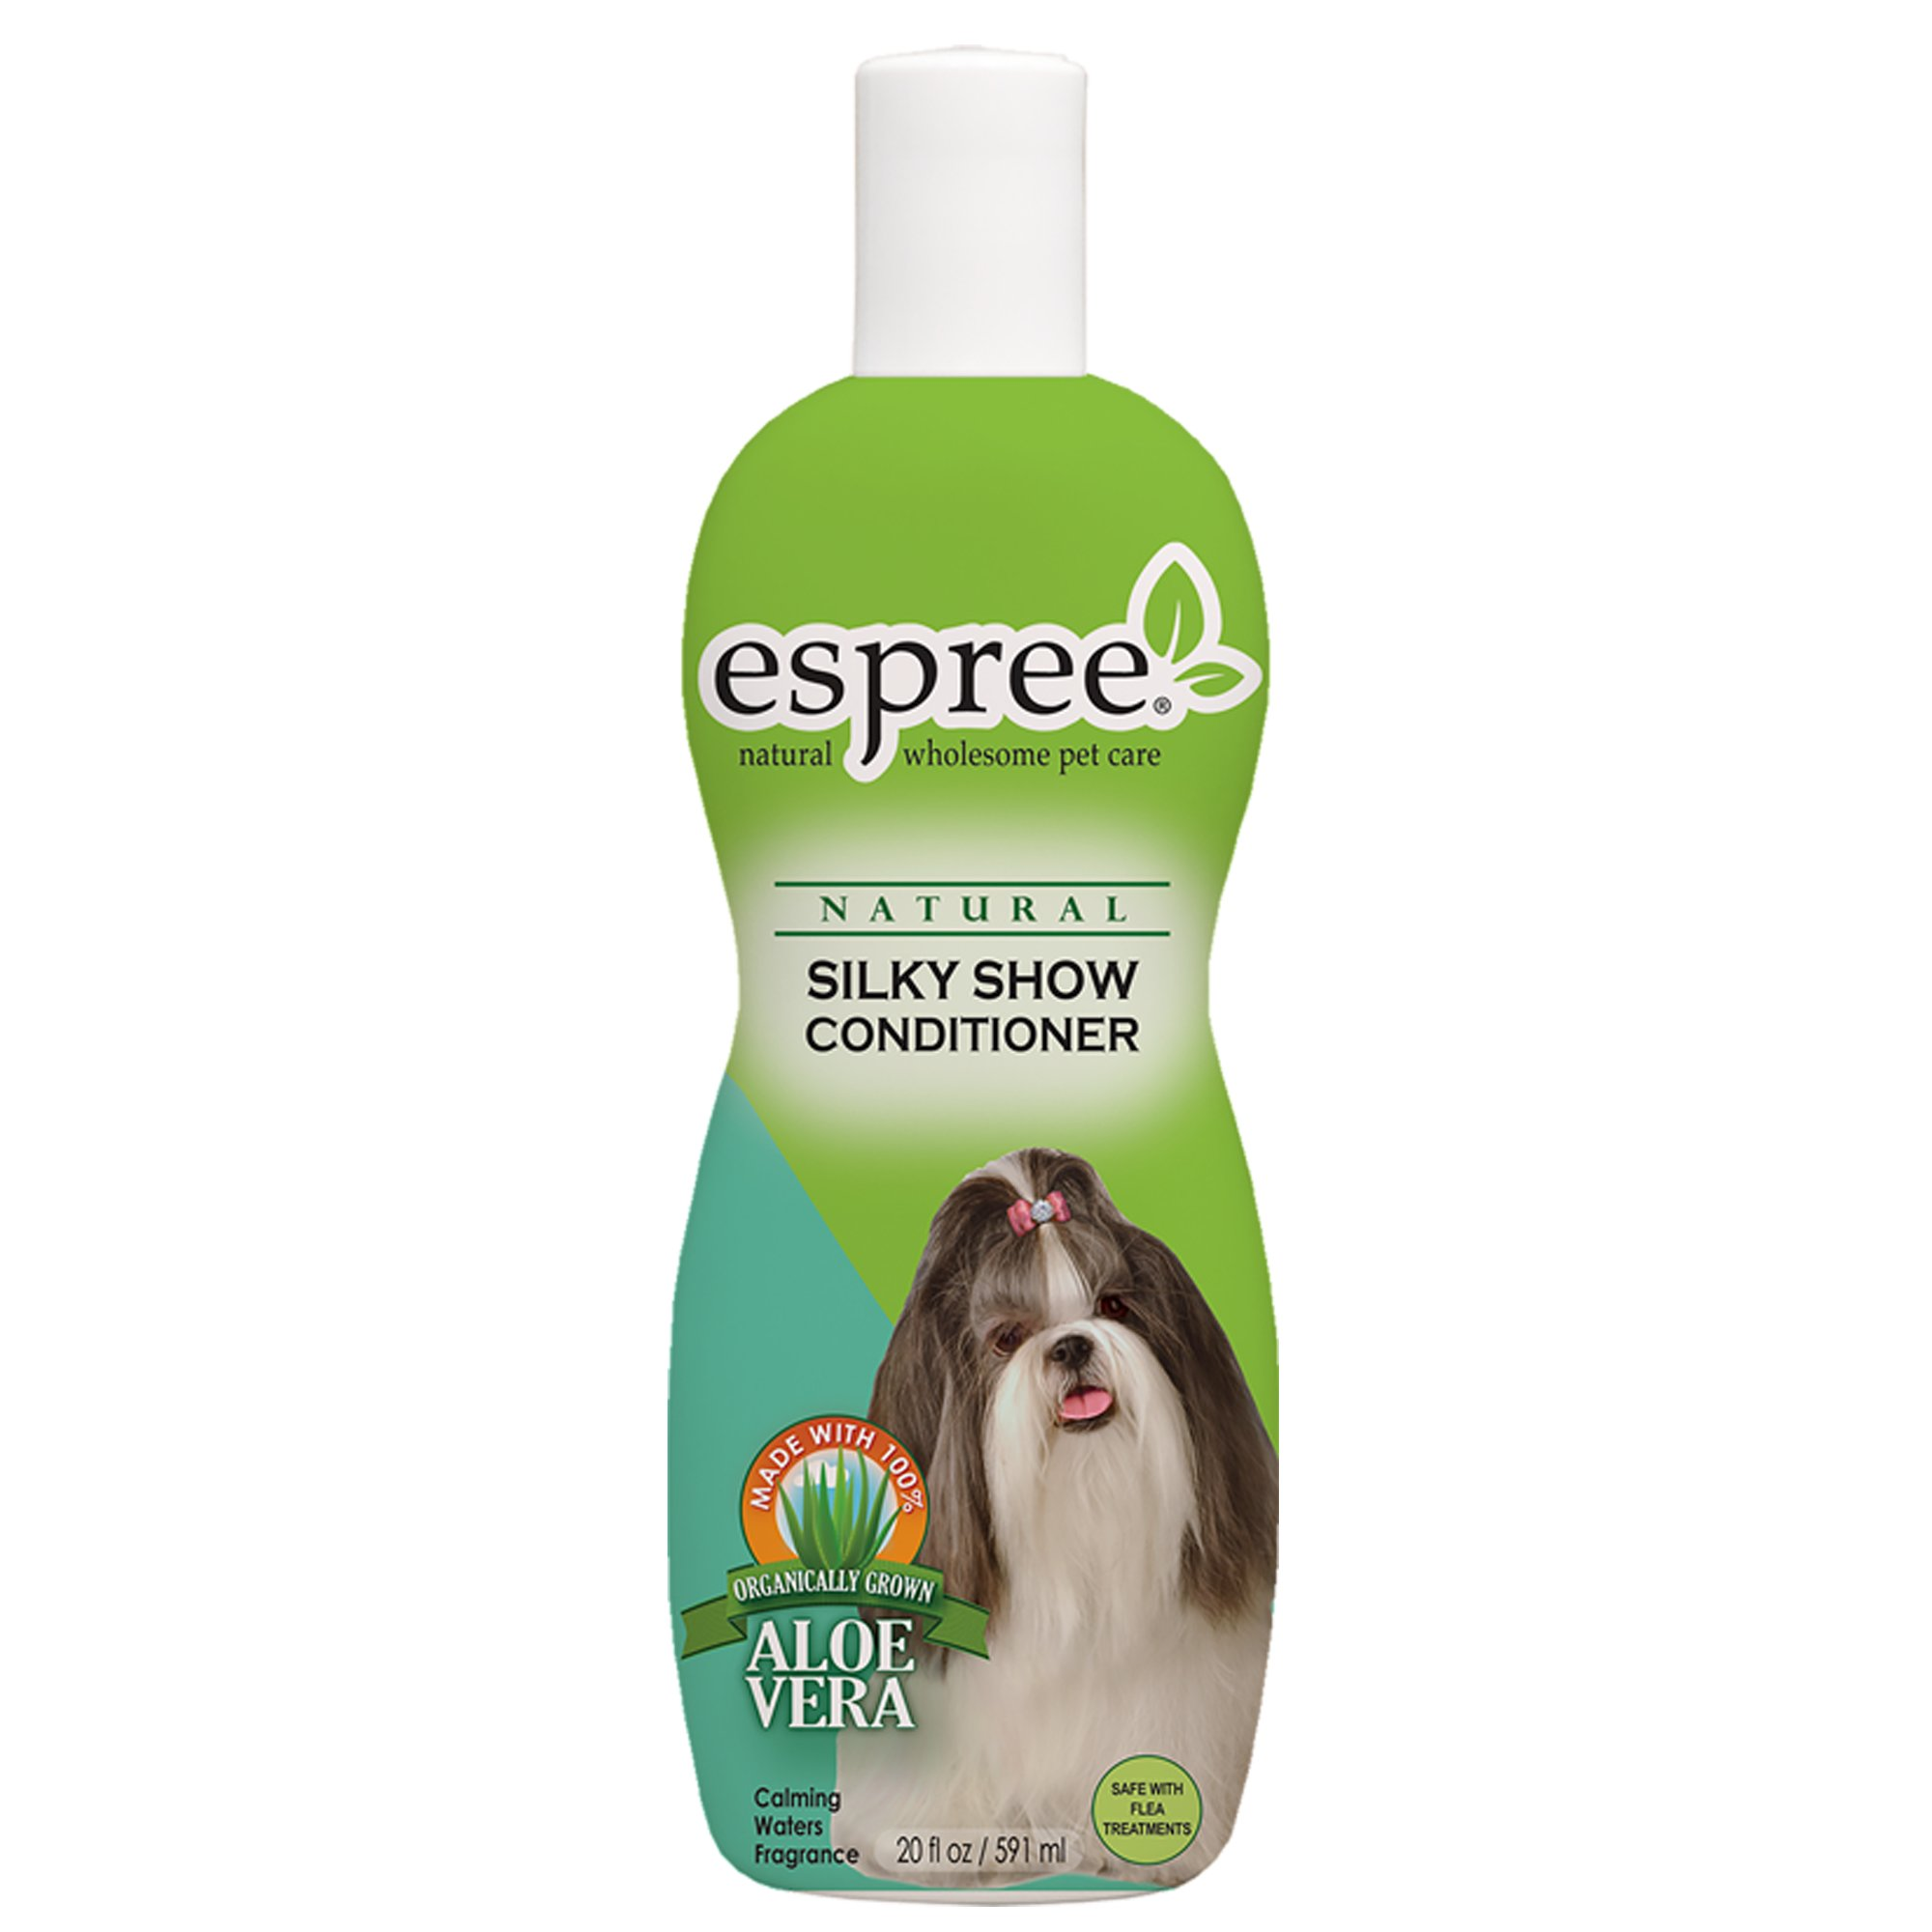 Espree Natural Silky Show Pet Conditioner